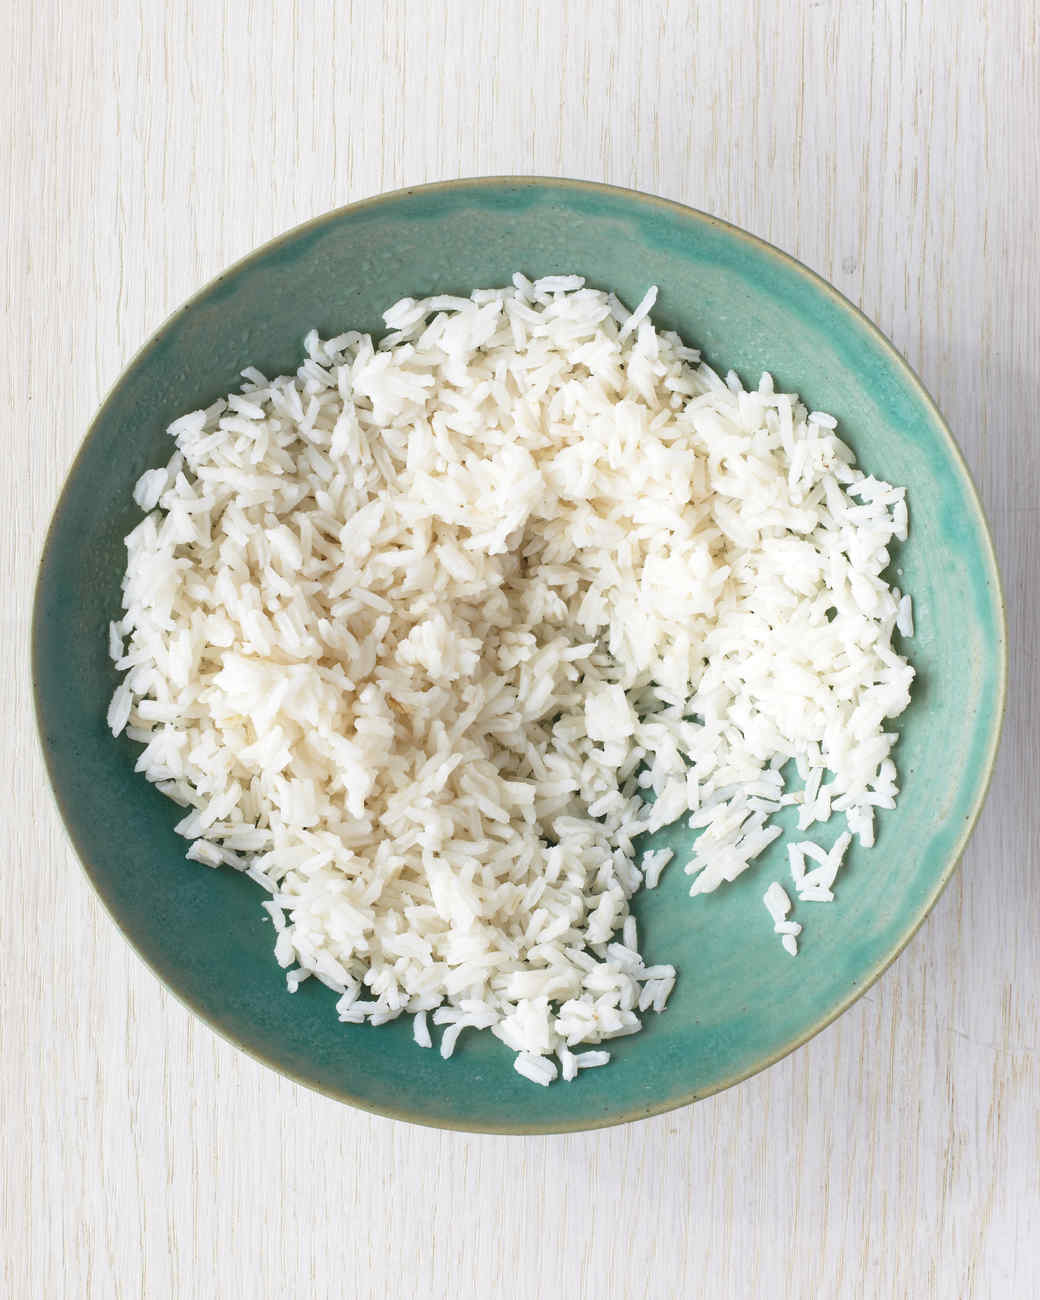 coconut-water-rice-018-md110117.jpg